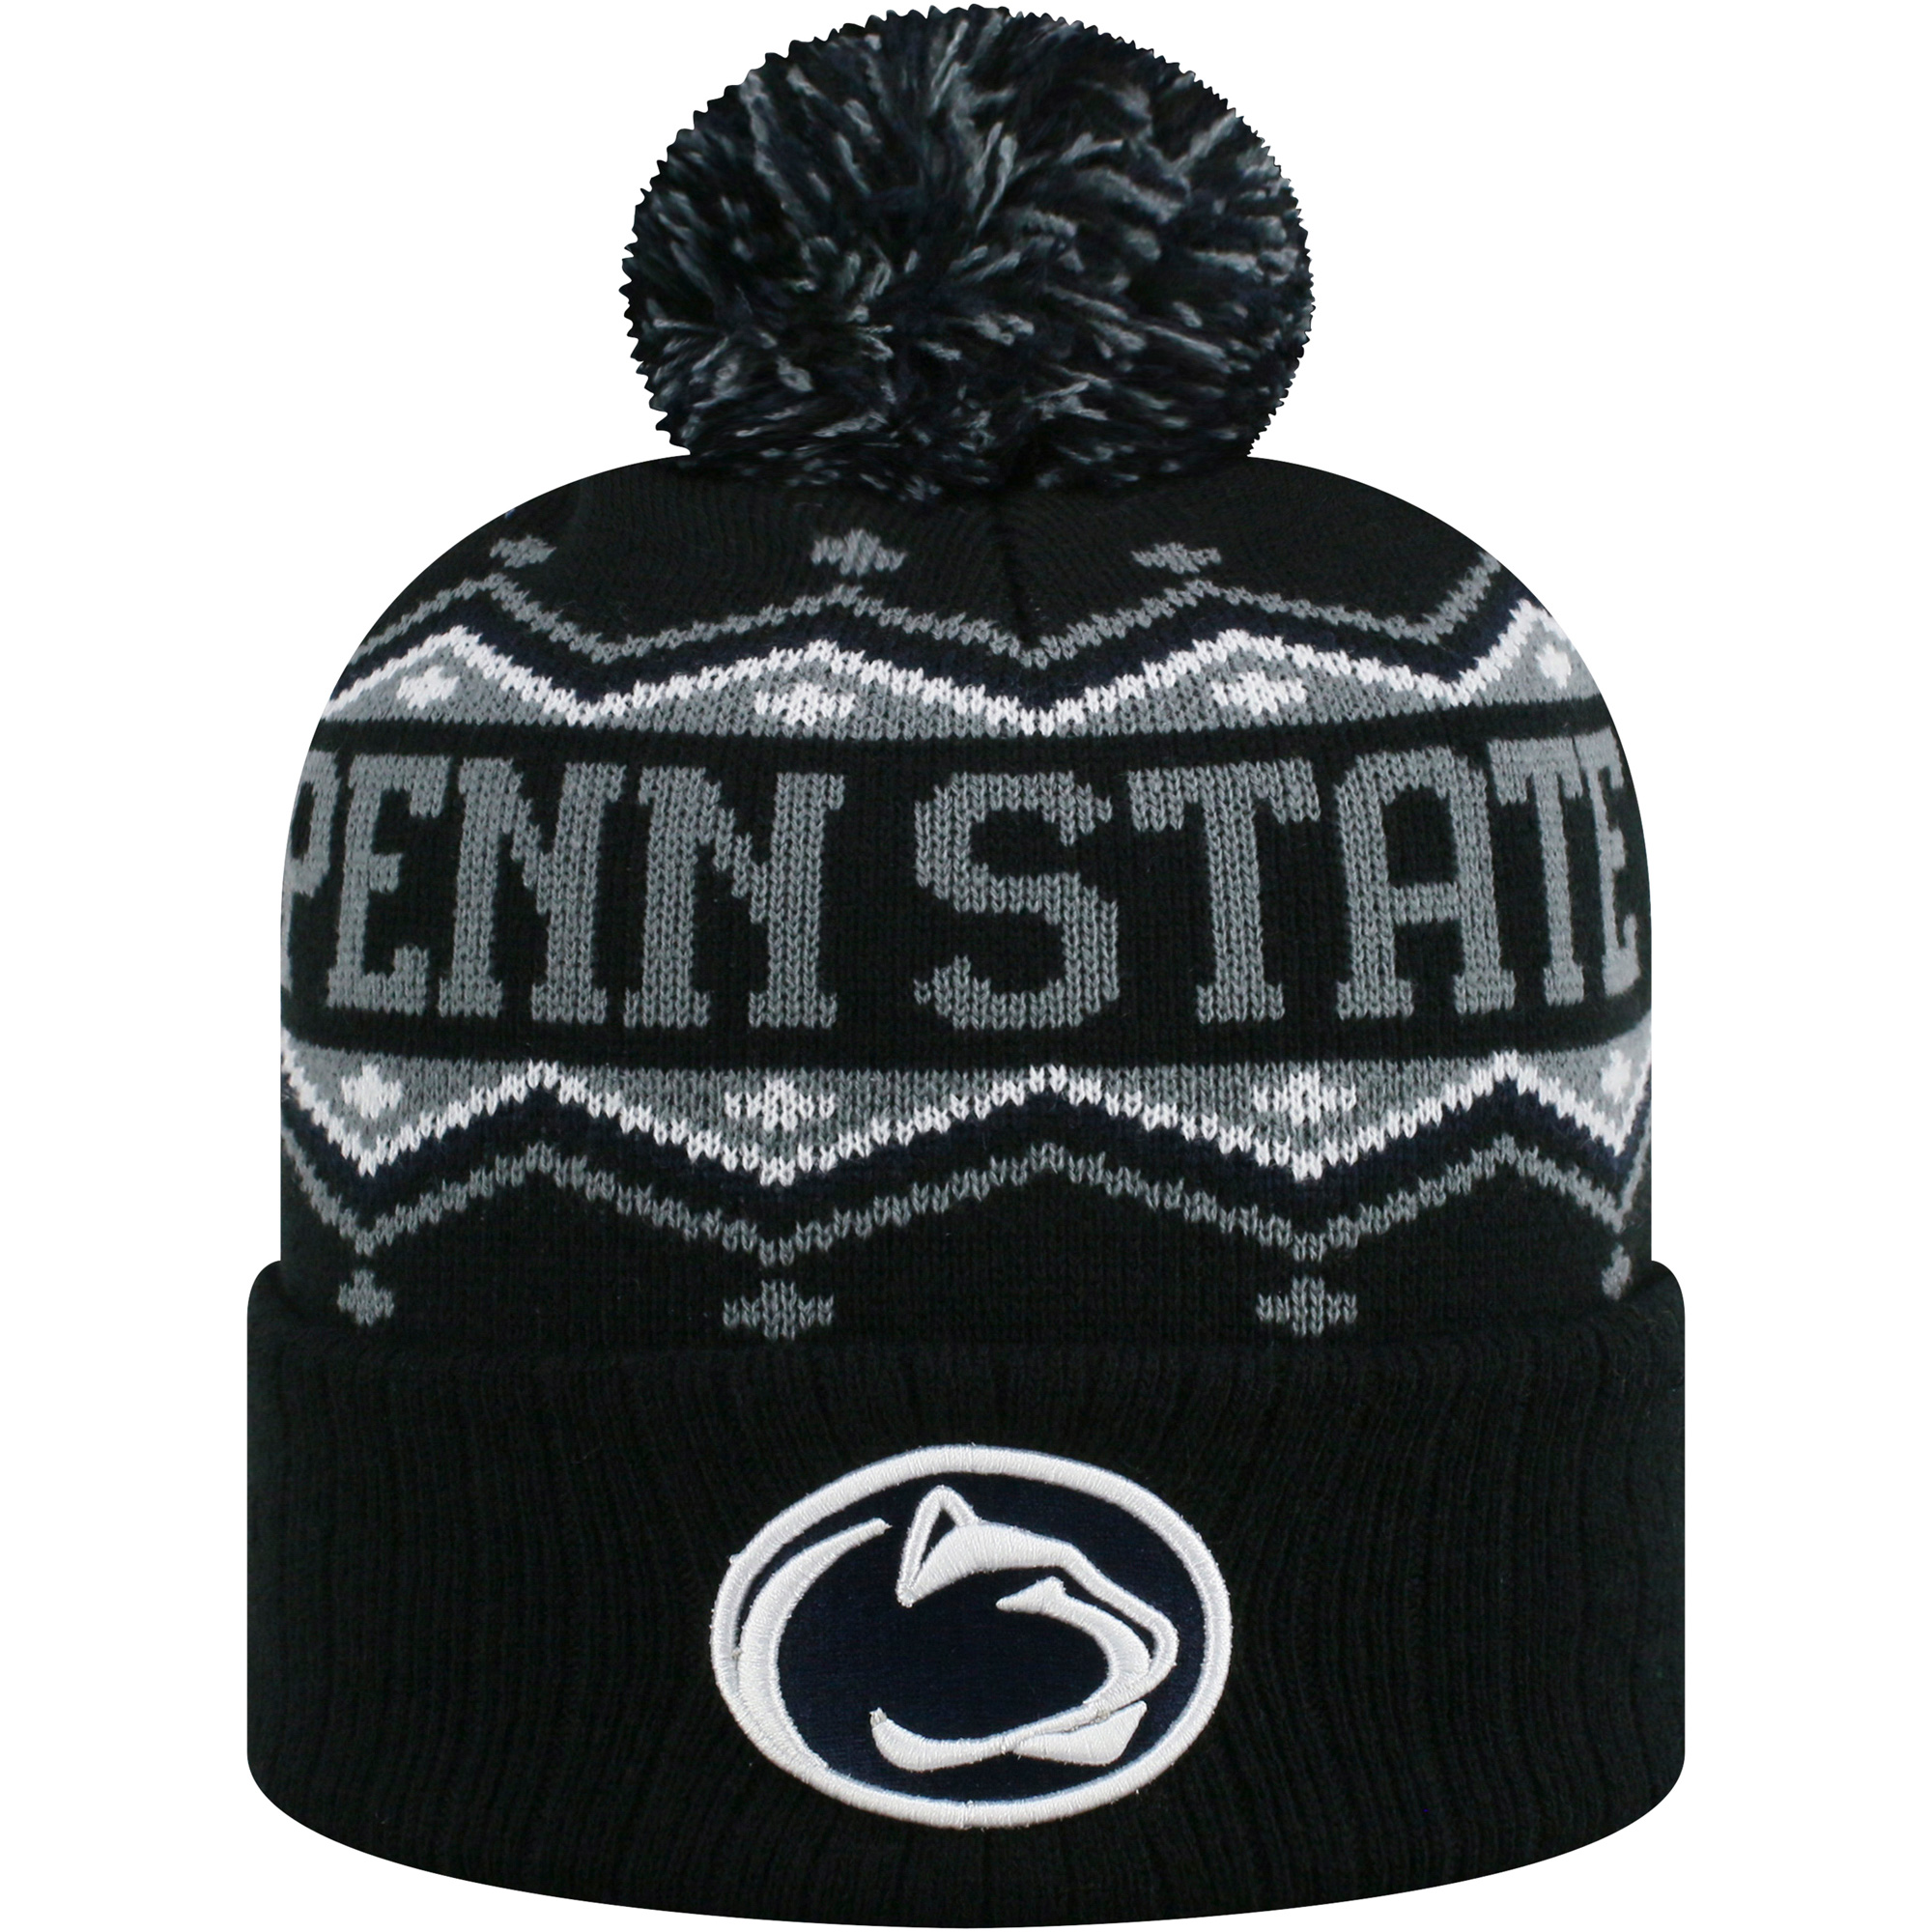 Men's Russell Black/Gray Penn State Nittany Lions Sewn Cuffed Knit Hat With Pom - OSFA